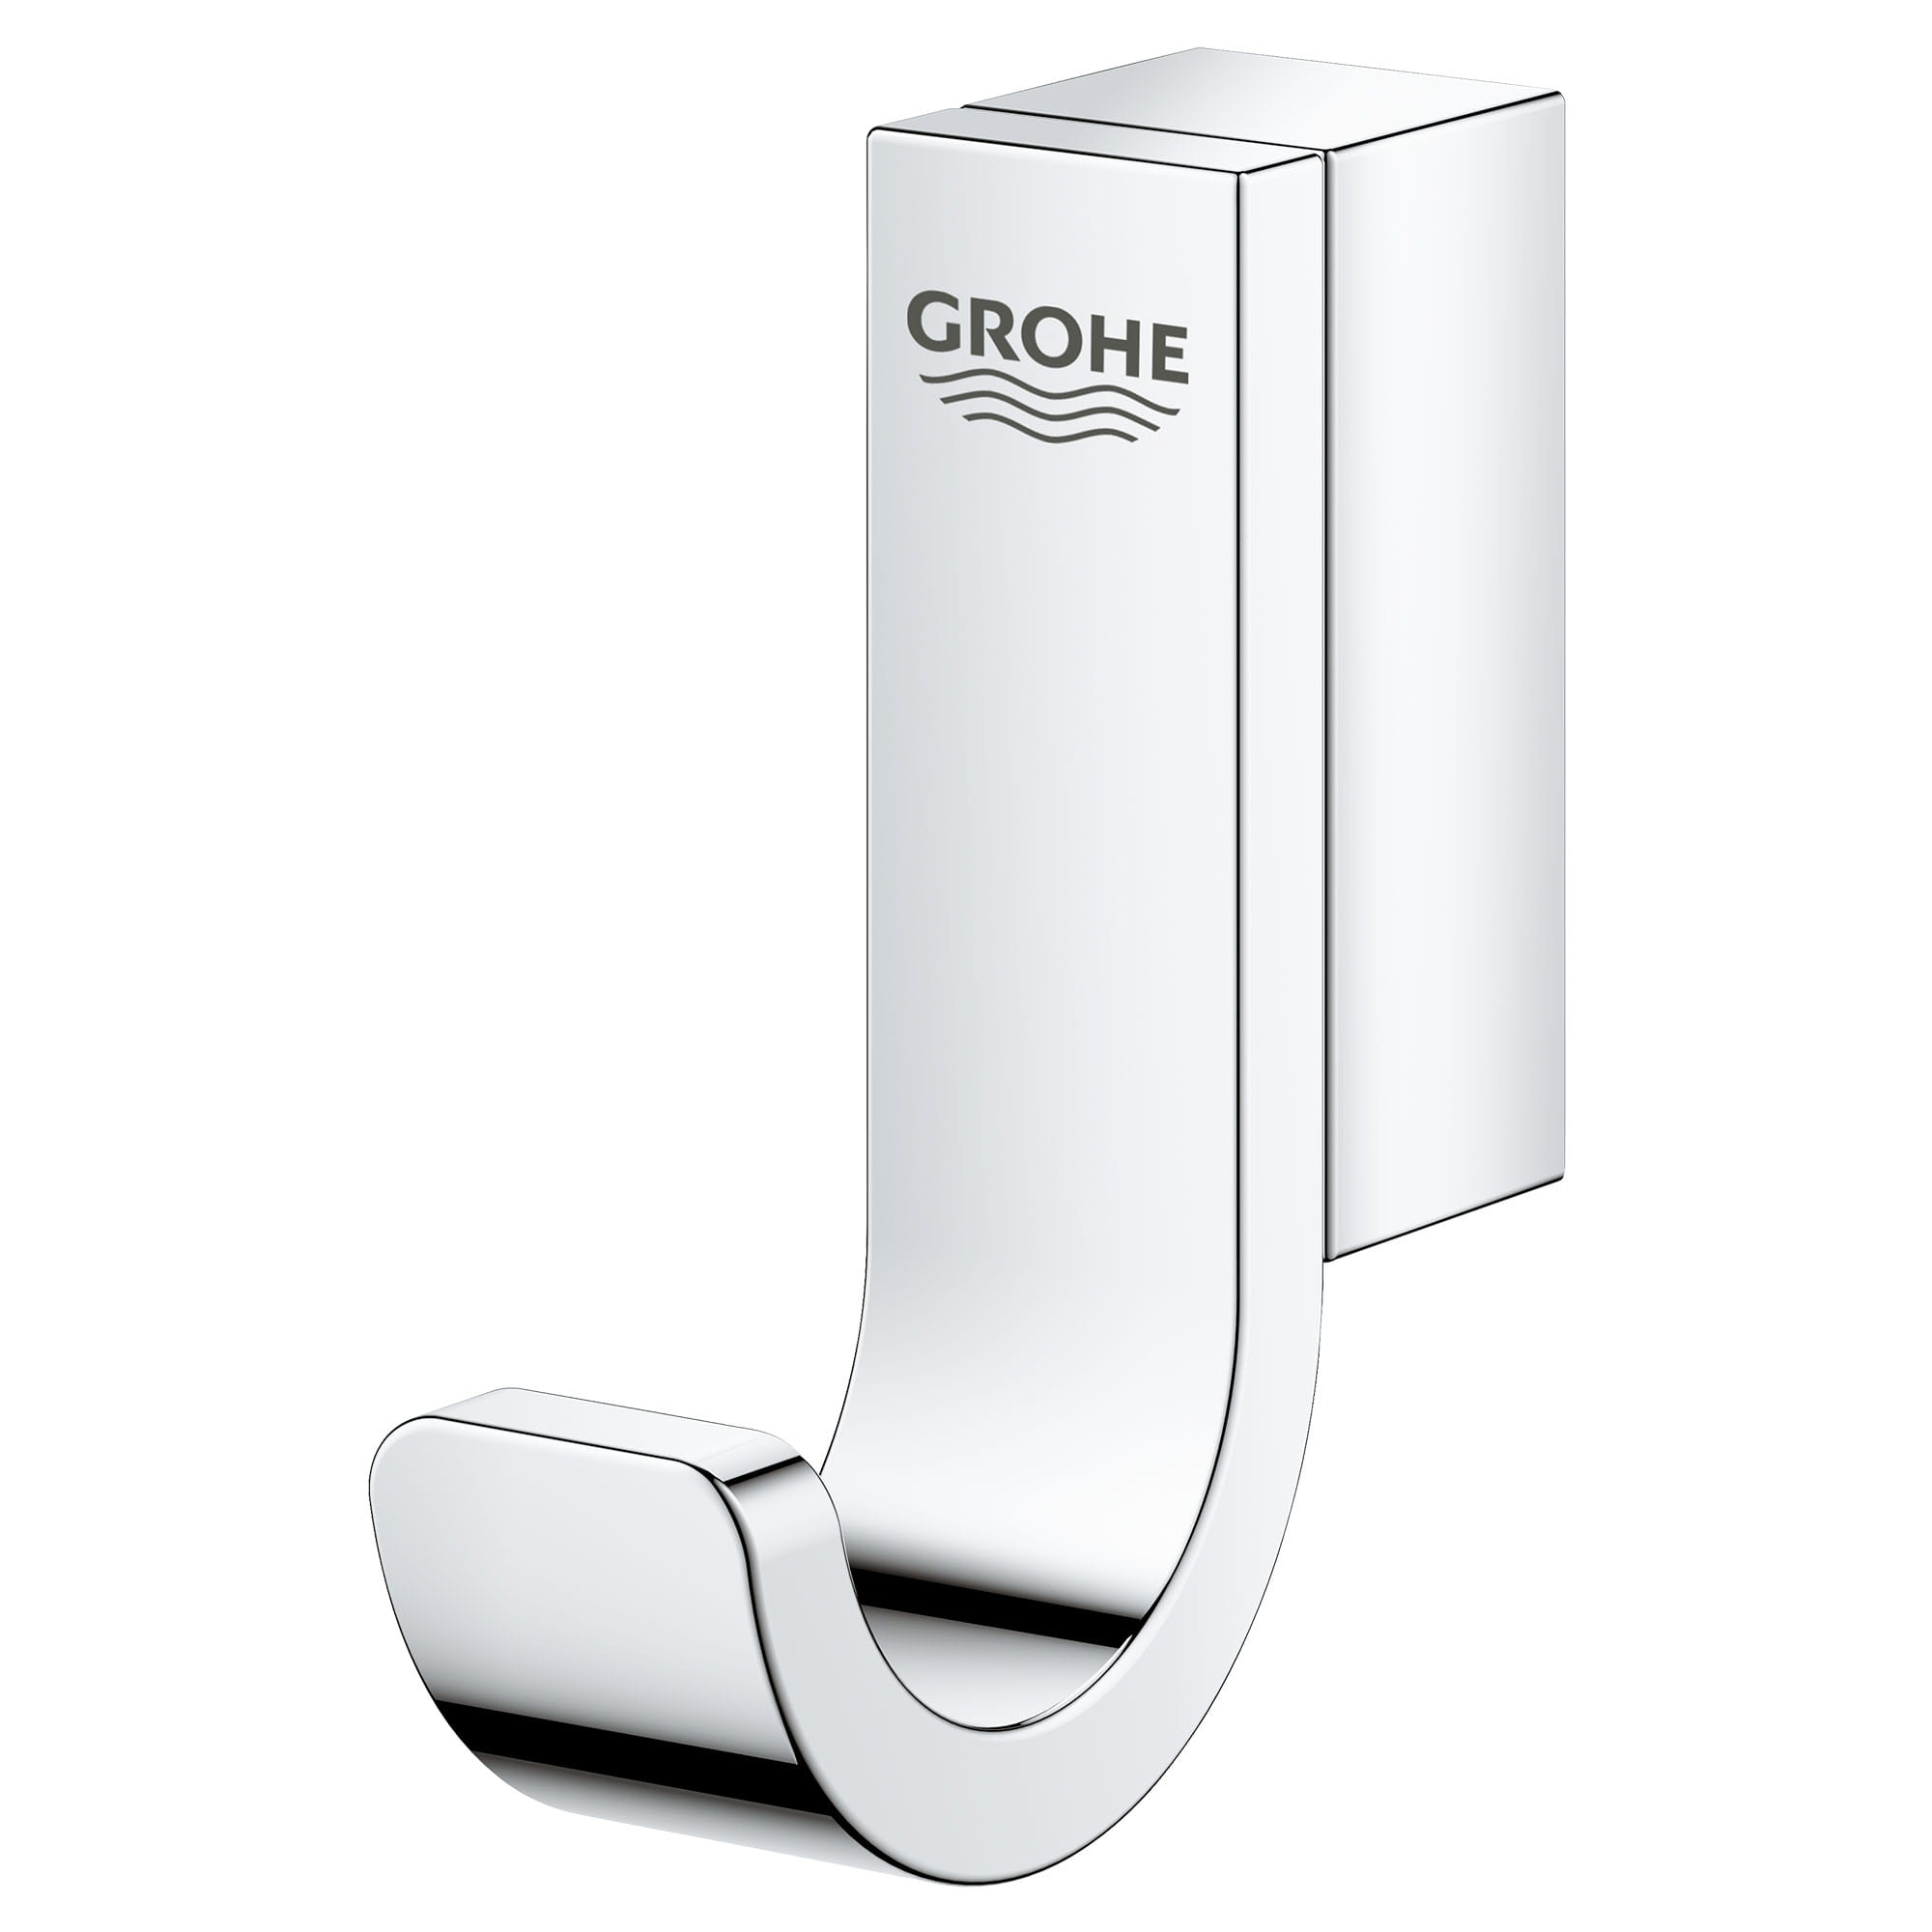 Crochet GROHE CHROME